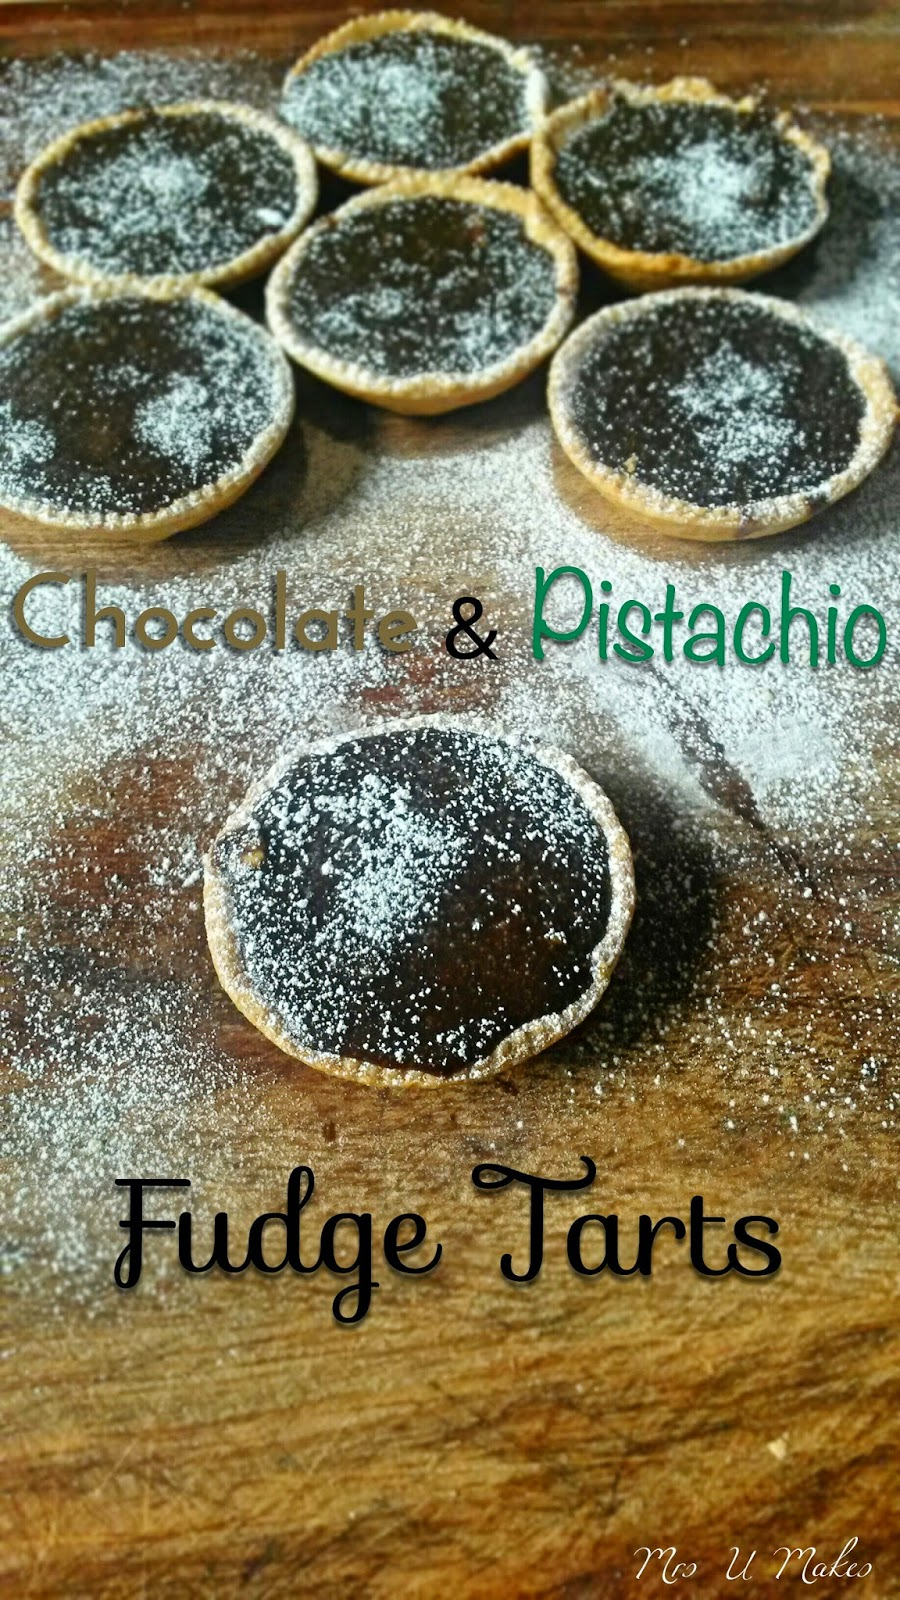 Chocolate and Pistachio Fudge Tarts by Mrs U Makes